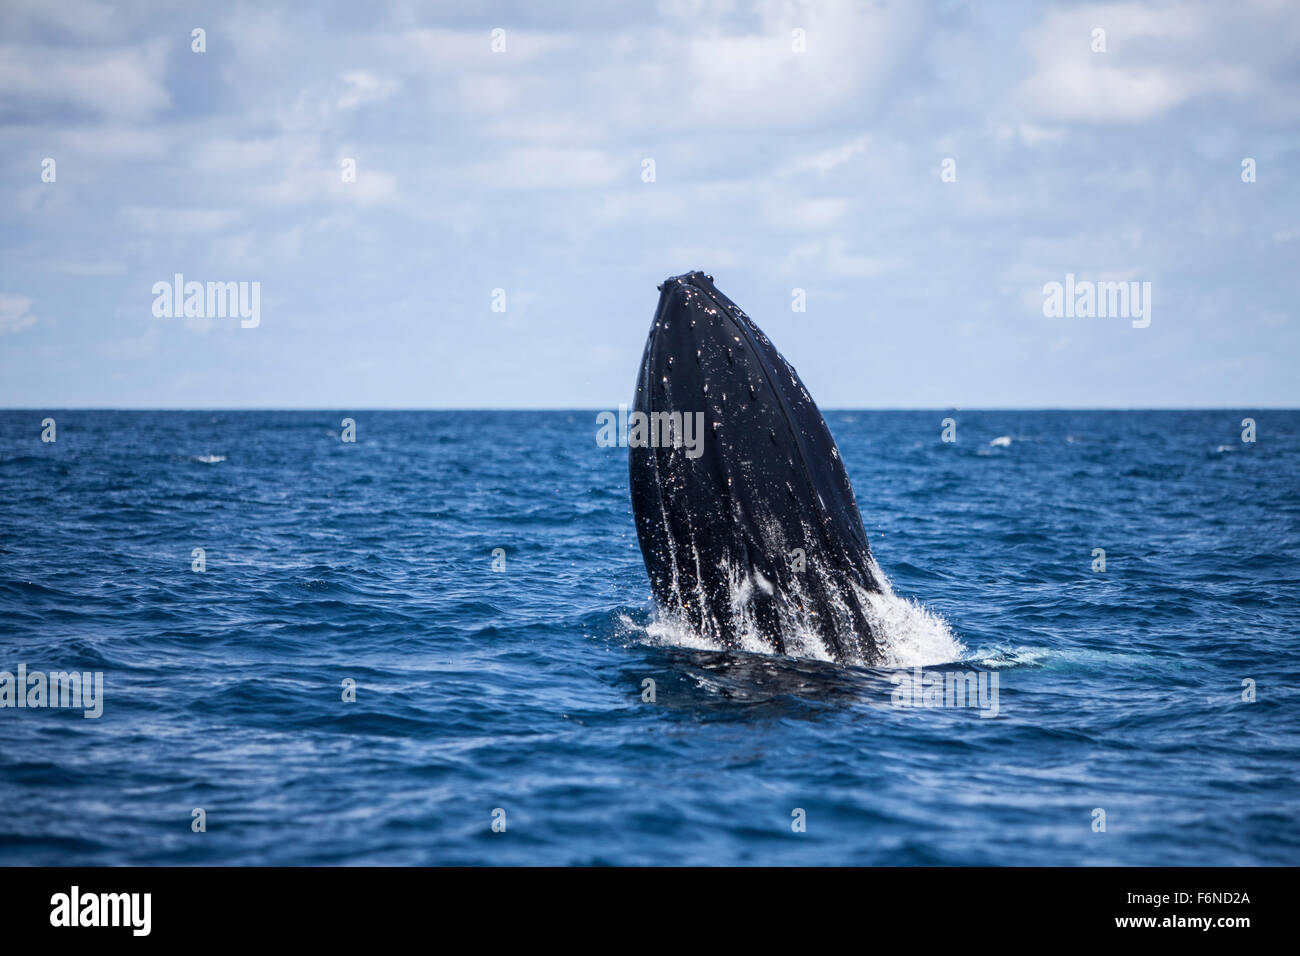 A large humpback whale (Megaptera novaeangliae) begins to breach out of the Atlantic Ocean. Why these huge whales Stock Photo